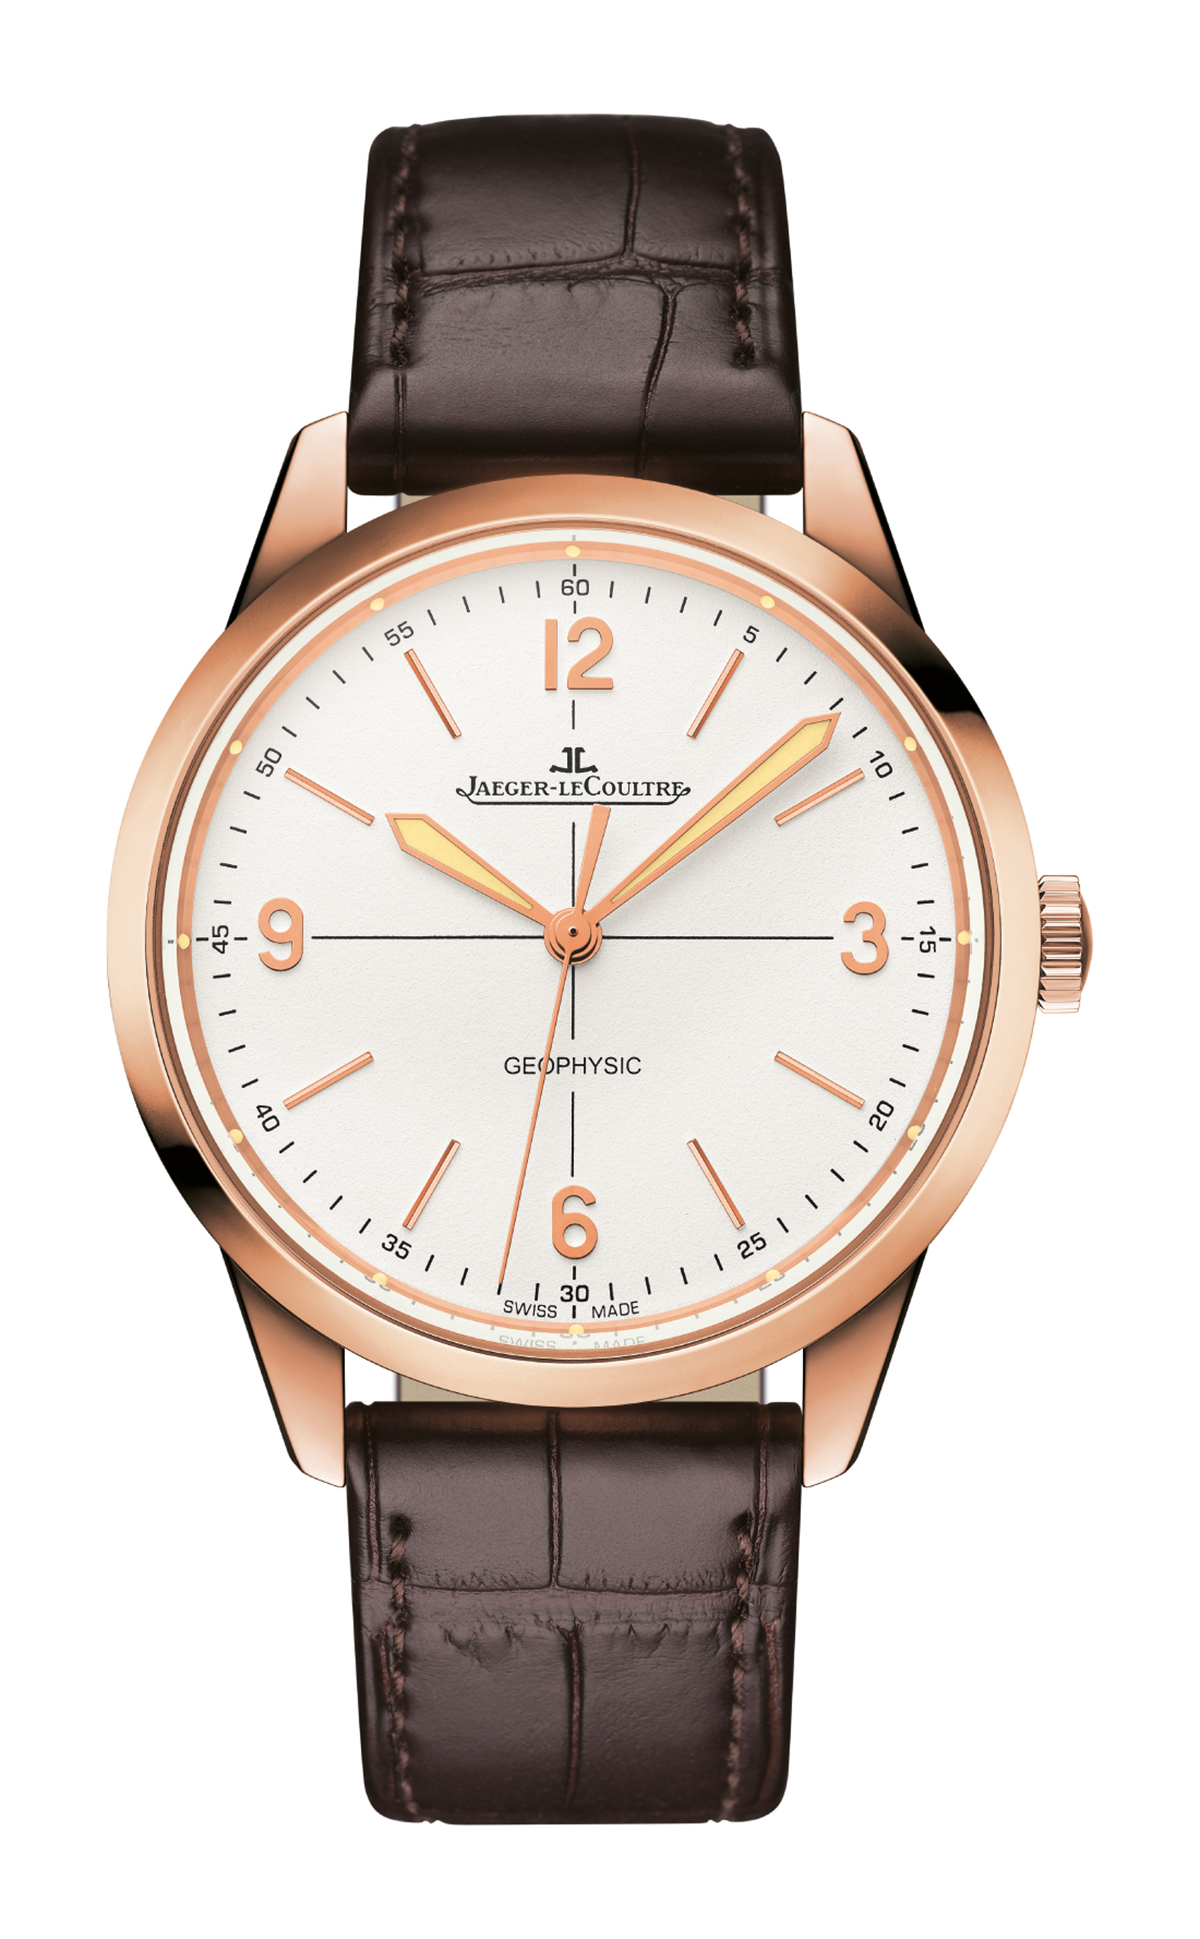 Jaeger-LeCoultre Geophysic 1958 - Pink Gold